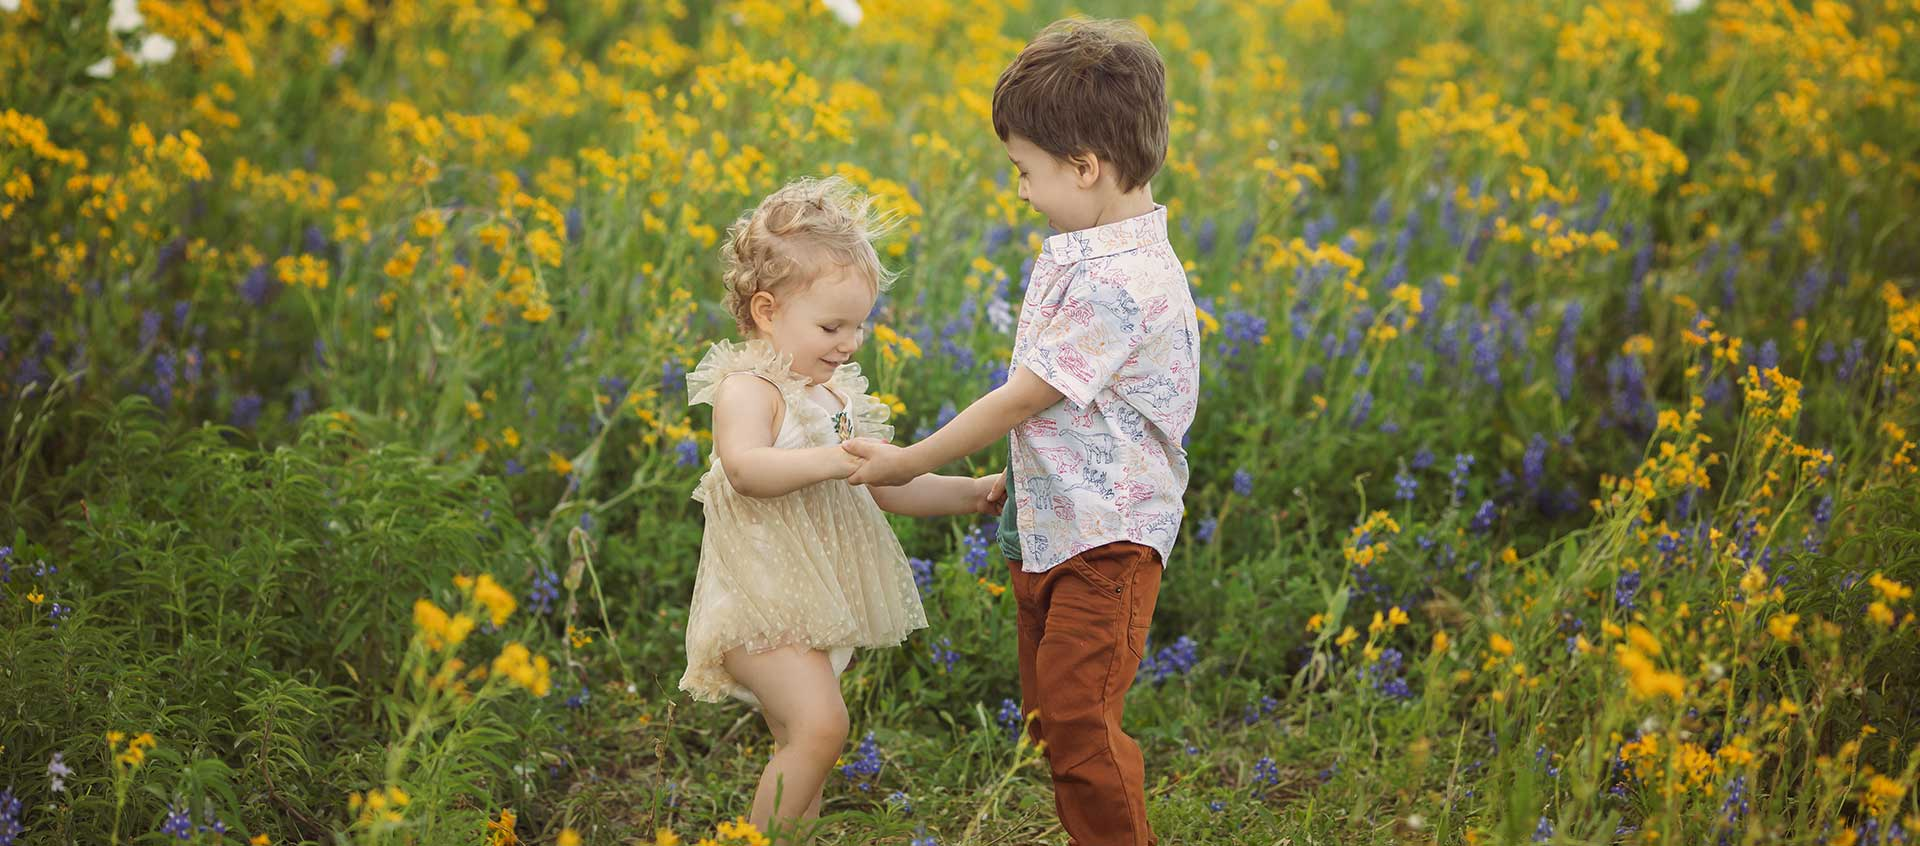 SEEM photography Children in Yellow and Bluebonnet Flowers